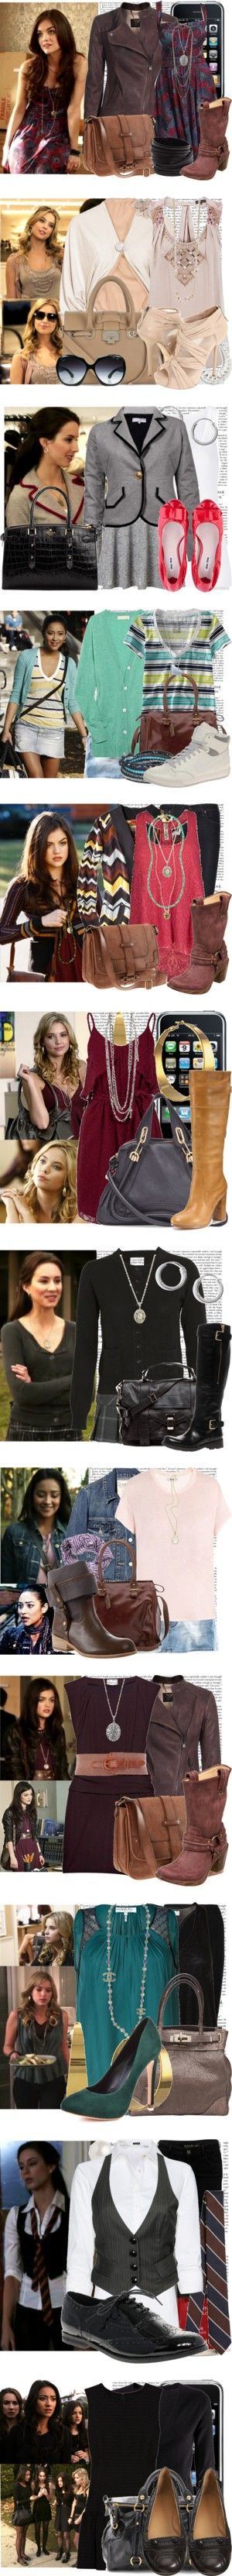 """Pretty Little Liars[season 1]"" by elenadobrev90 ❤ liked on Polyvore"